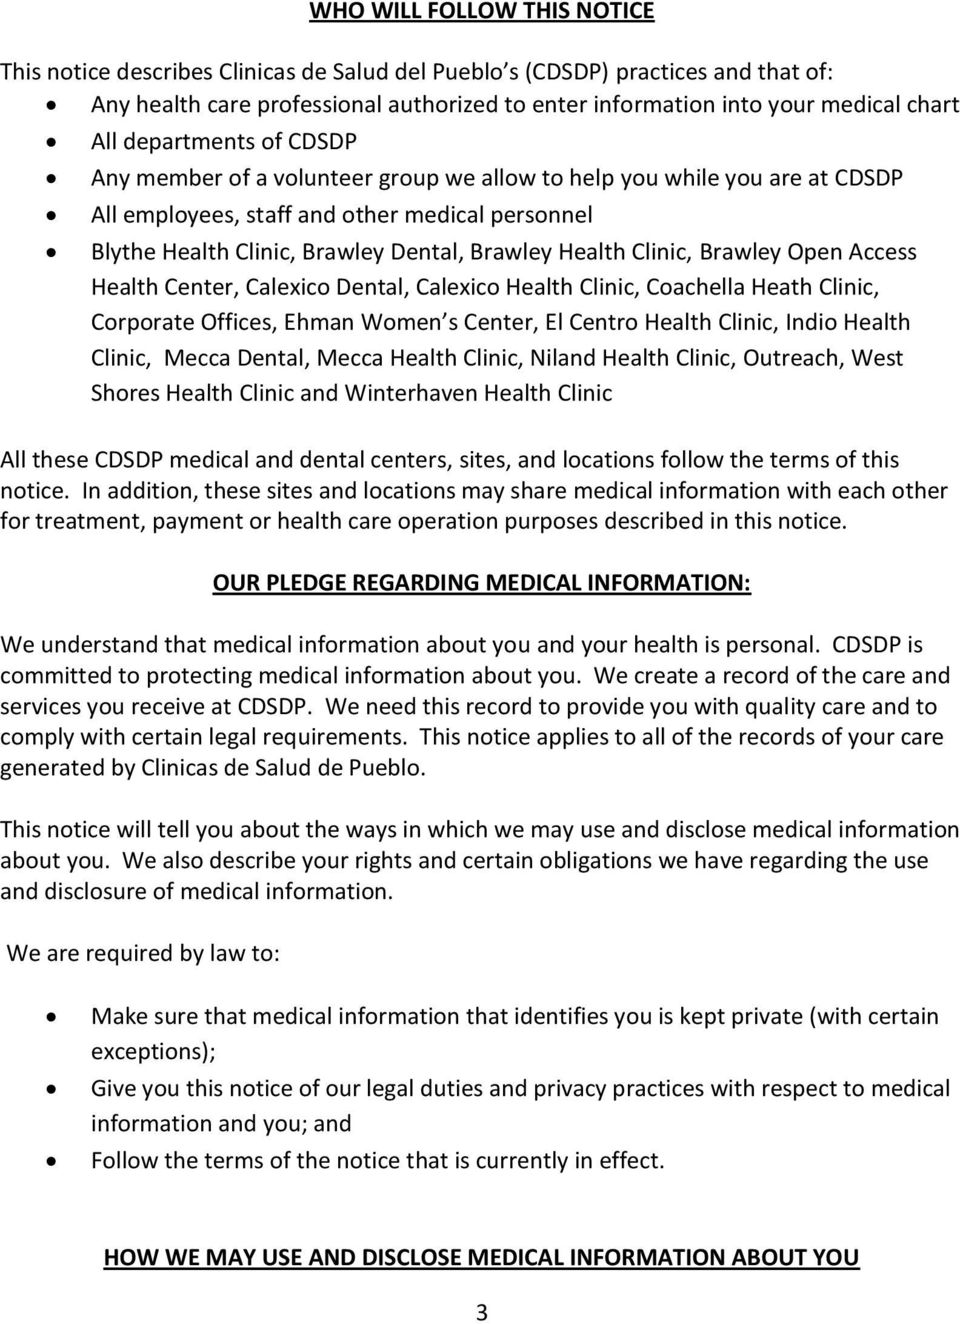 Health Clinic, Brawley Open Access Health Center, Calexico Dental, Calexico Health Clinic, Coachella Heath Clinic, Corporate Offices, Ehman Women s Center, El Centro Health Clinic, Indio Health